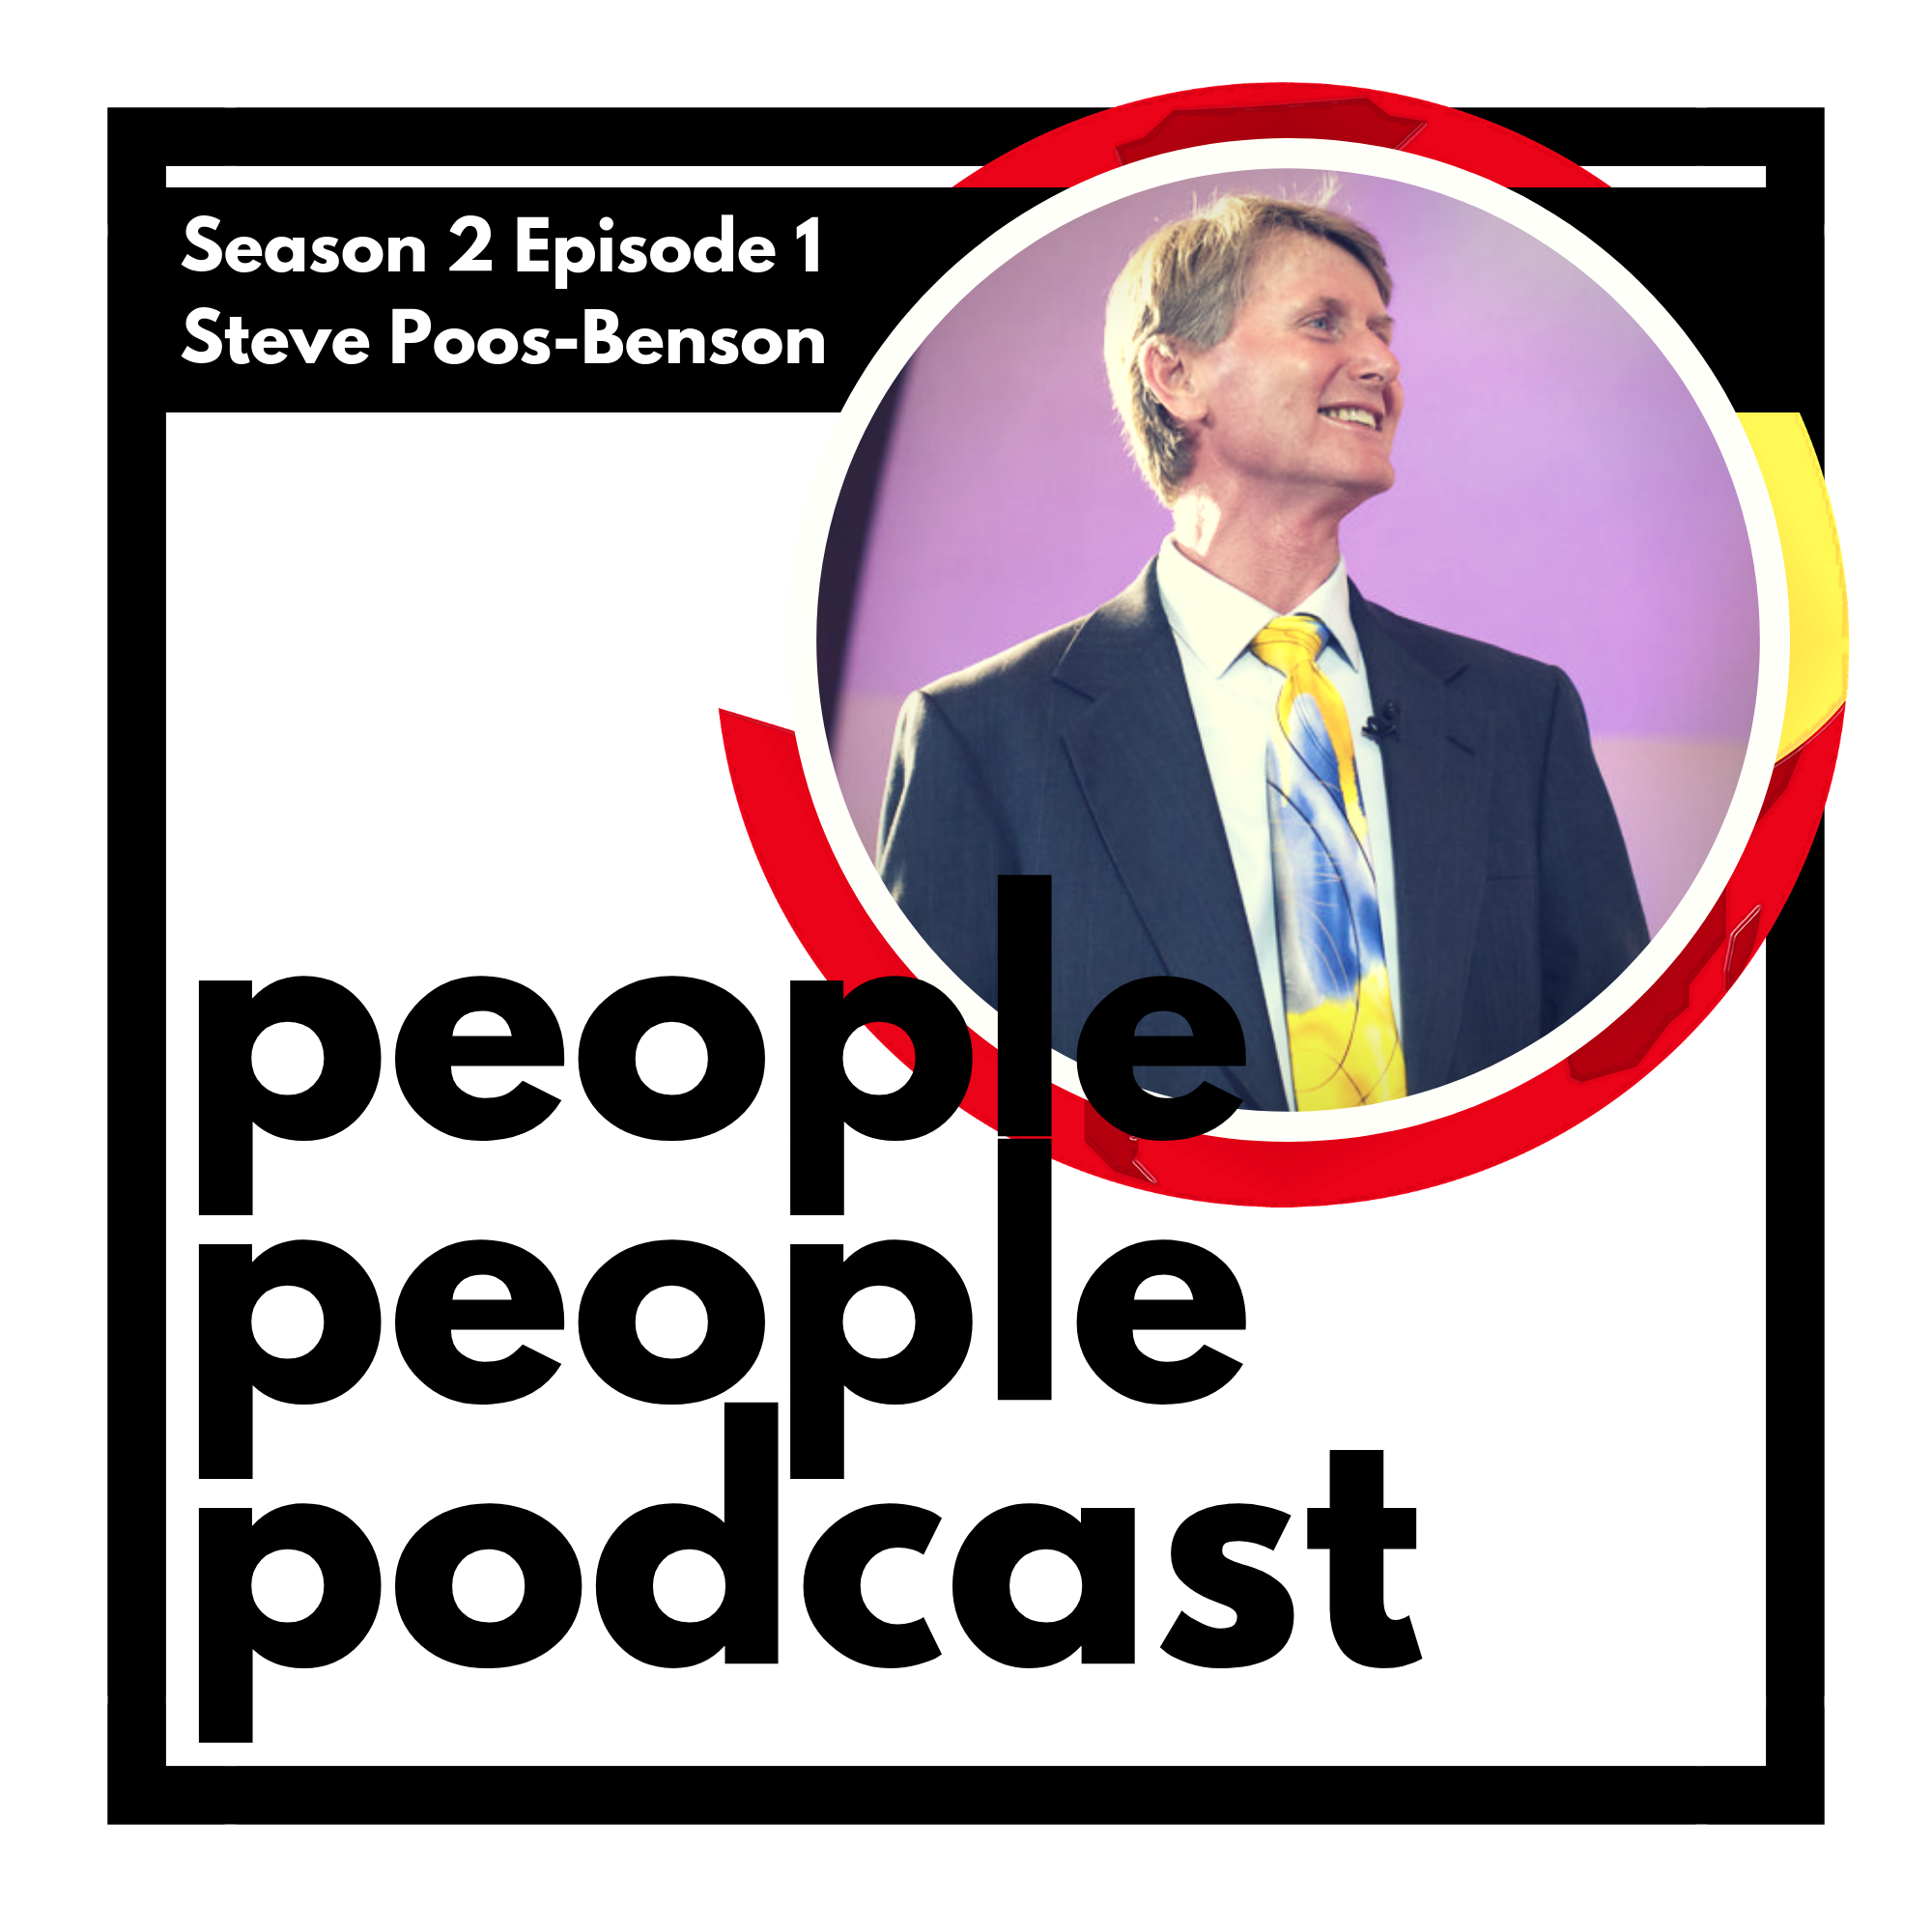 people people podcast (14).png